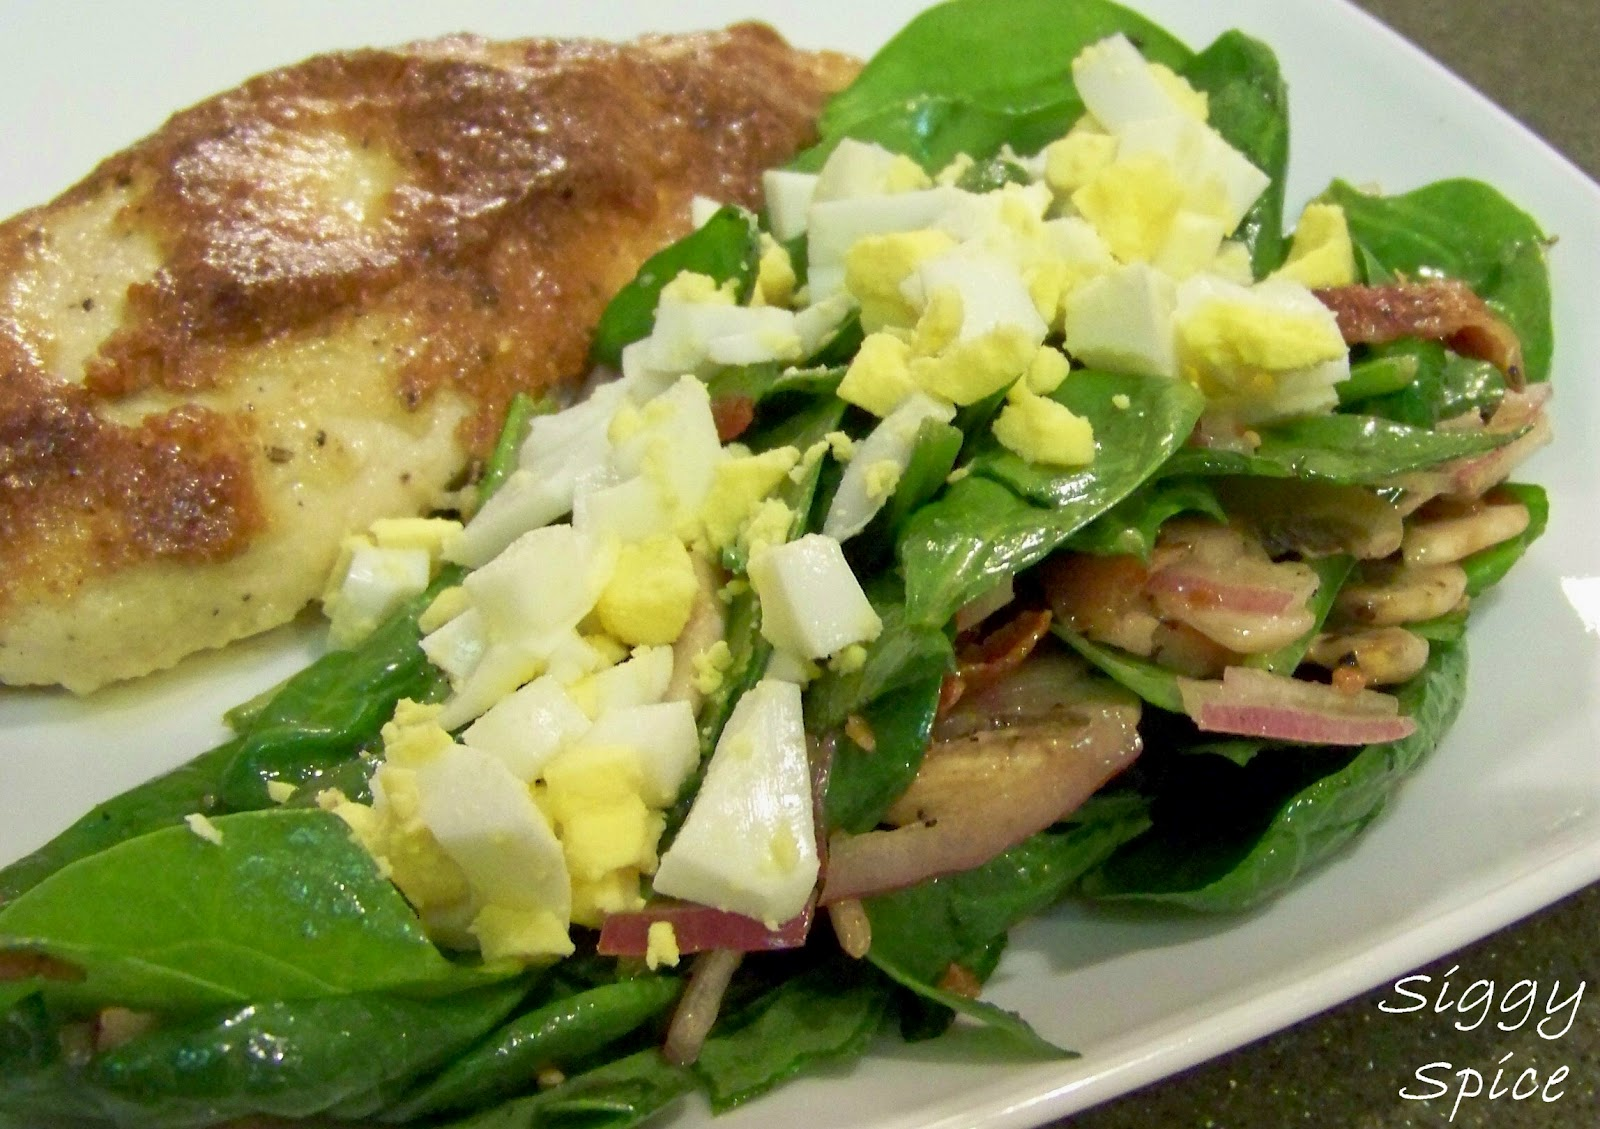 Siggy Spice Spinach Salad With Warm Bacon Dressing